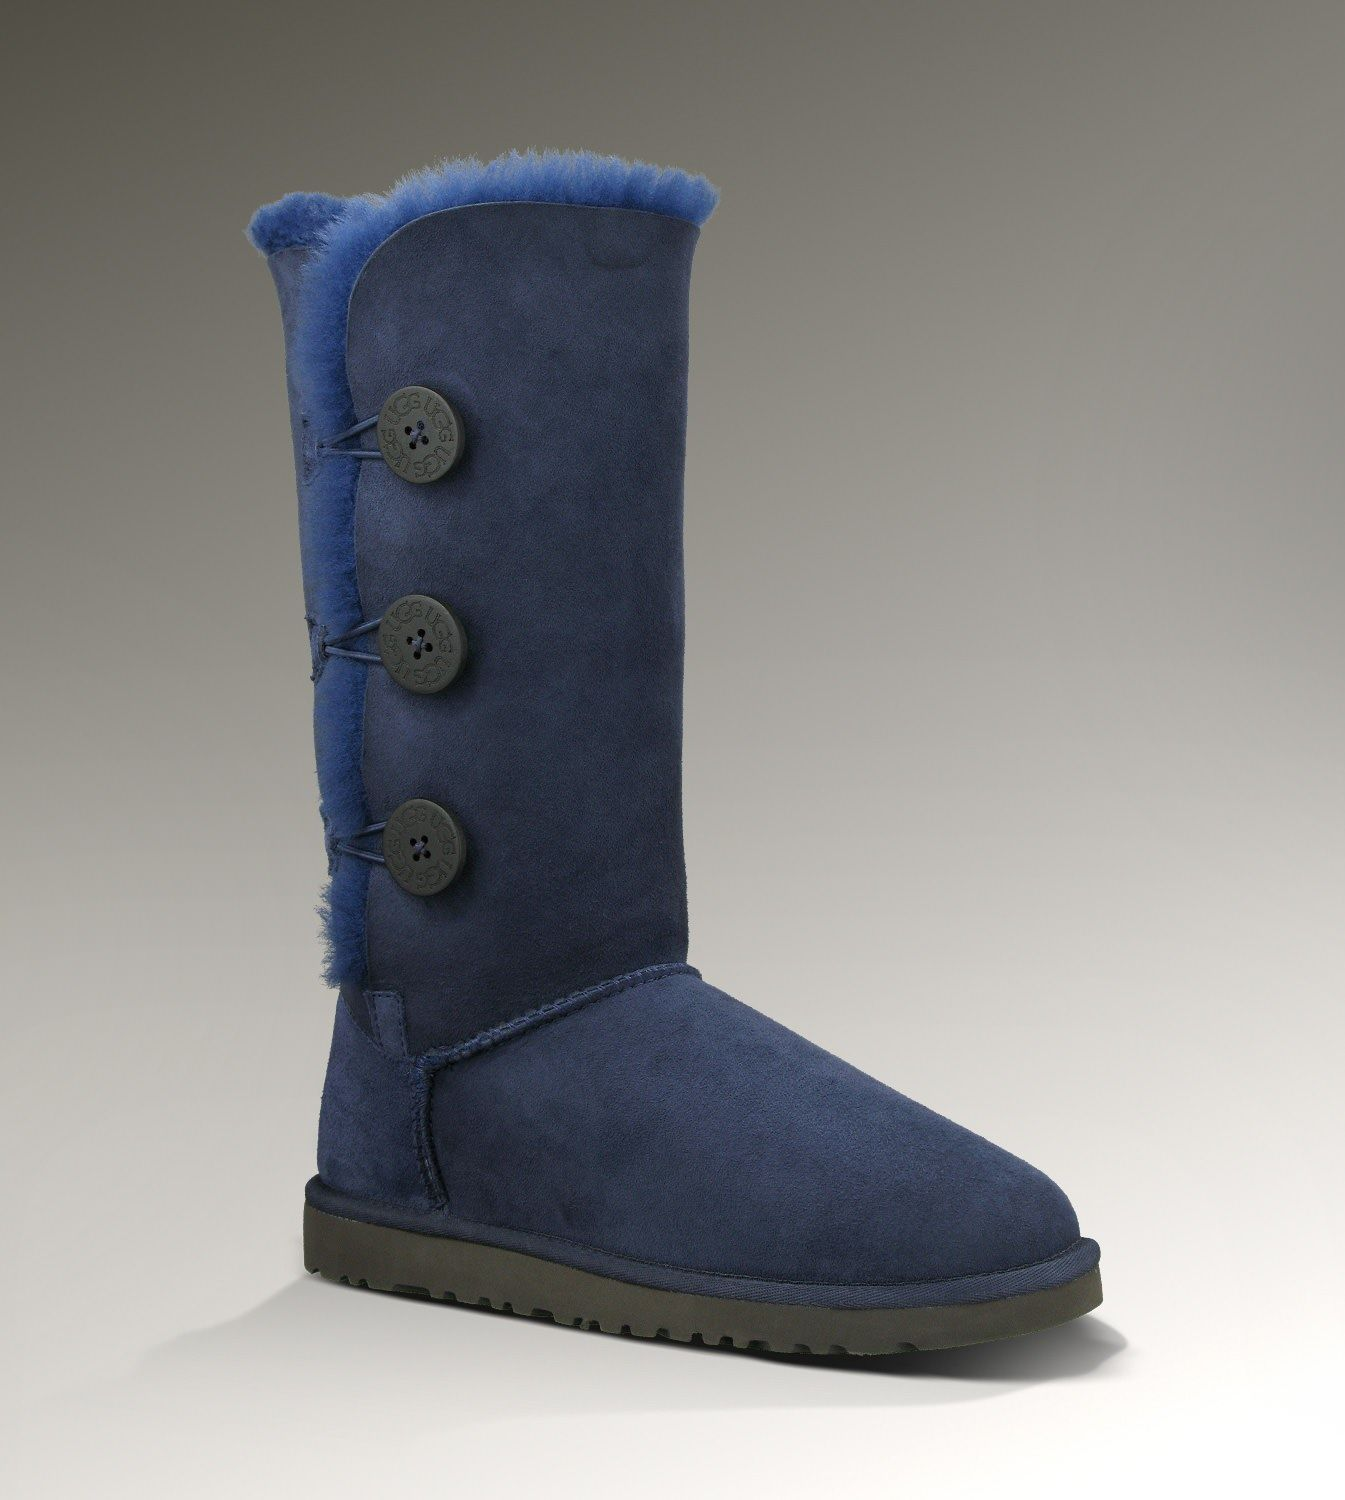 Ugg Womens Bailey Button Triplet NavyUGG Boots Cheap Sale!